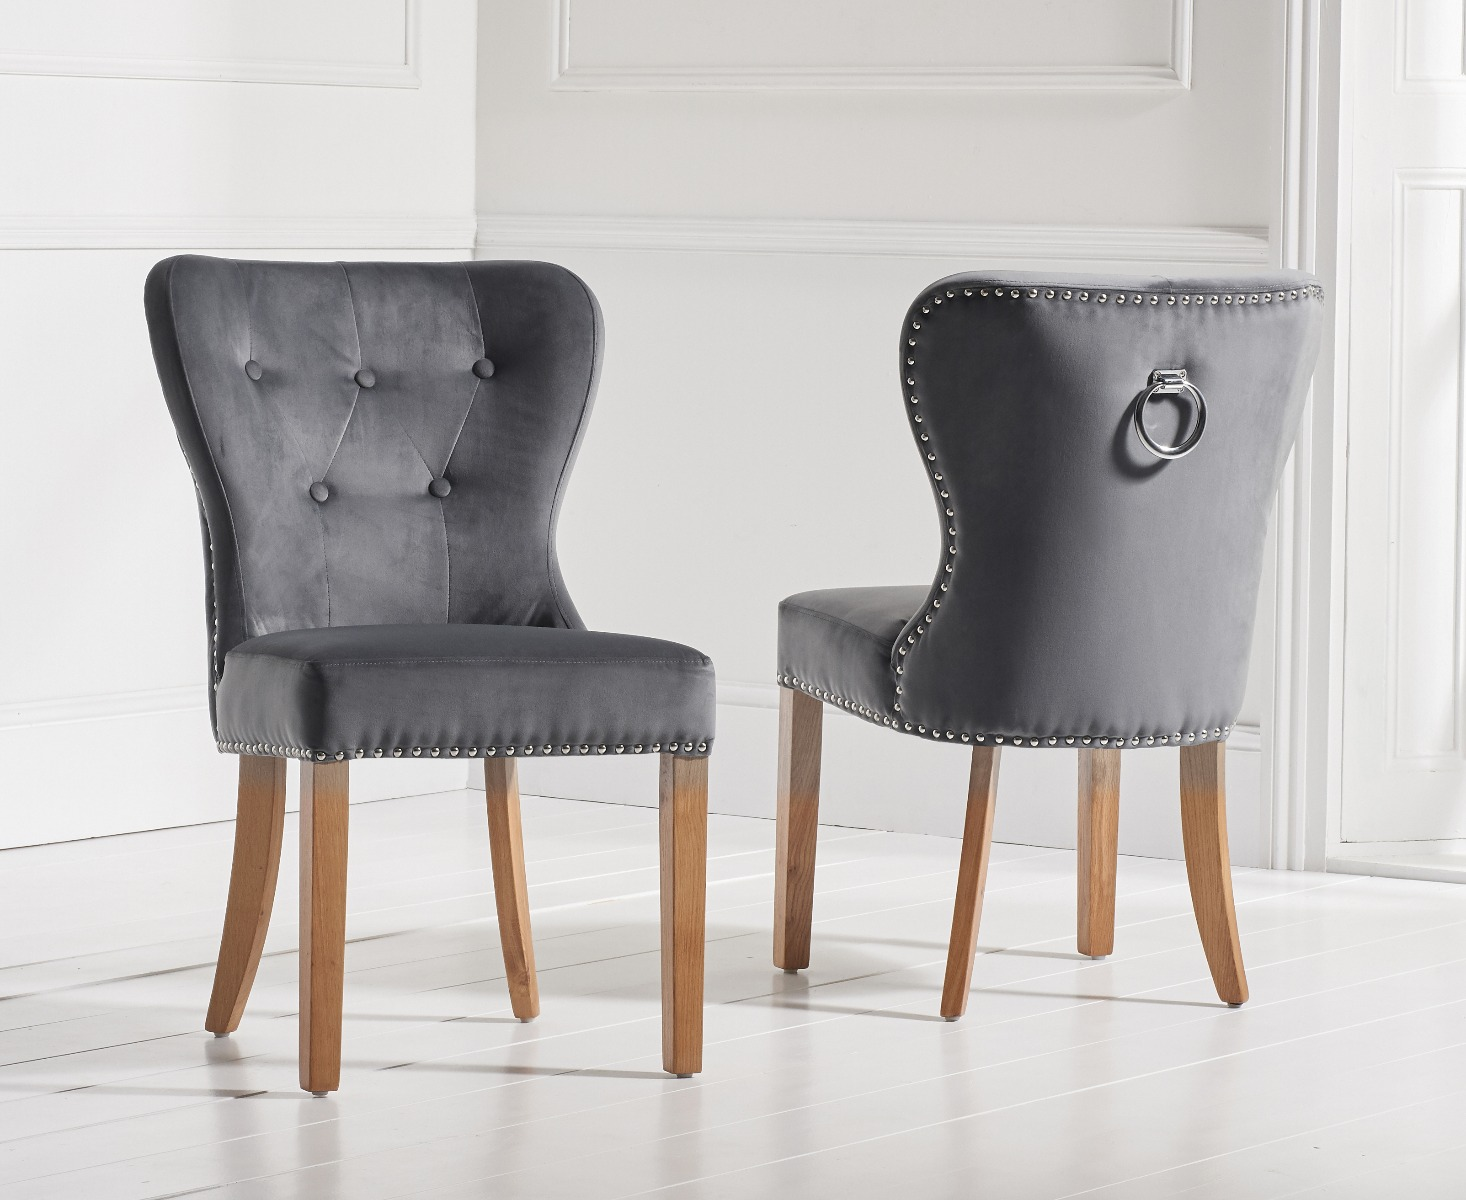 Studded Dining Chairs Knightsbridge Studded Grey Velvet Oak Leg Dining Chairs